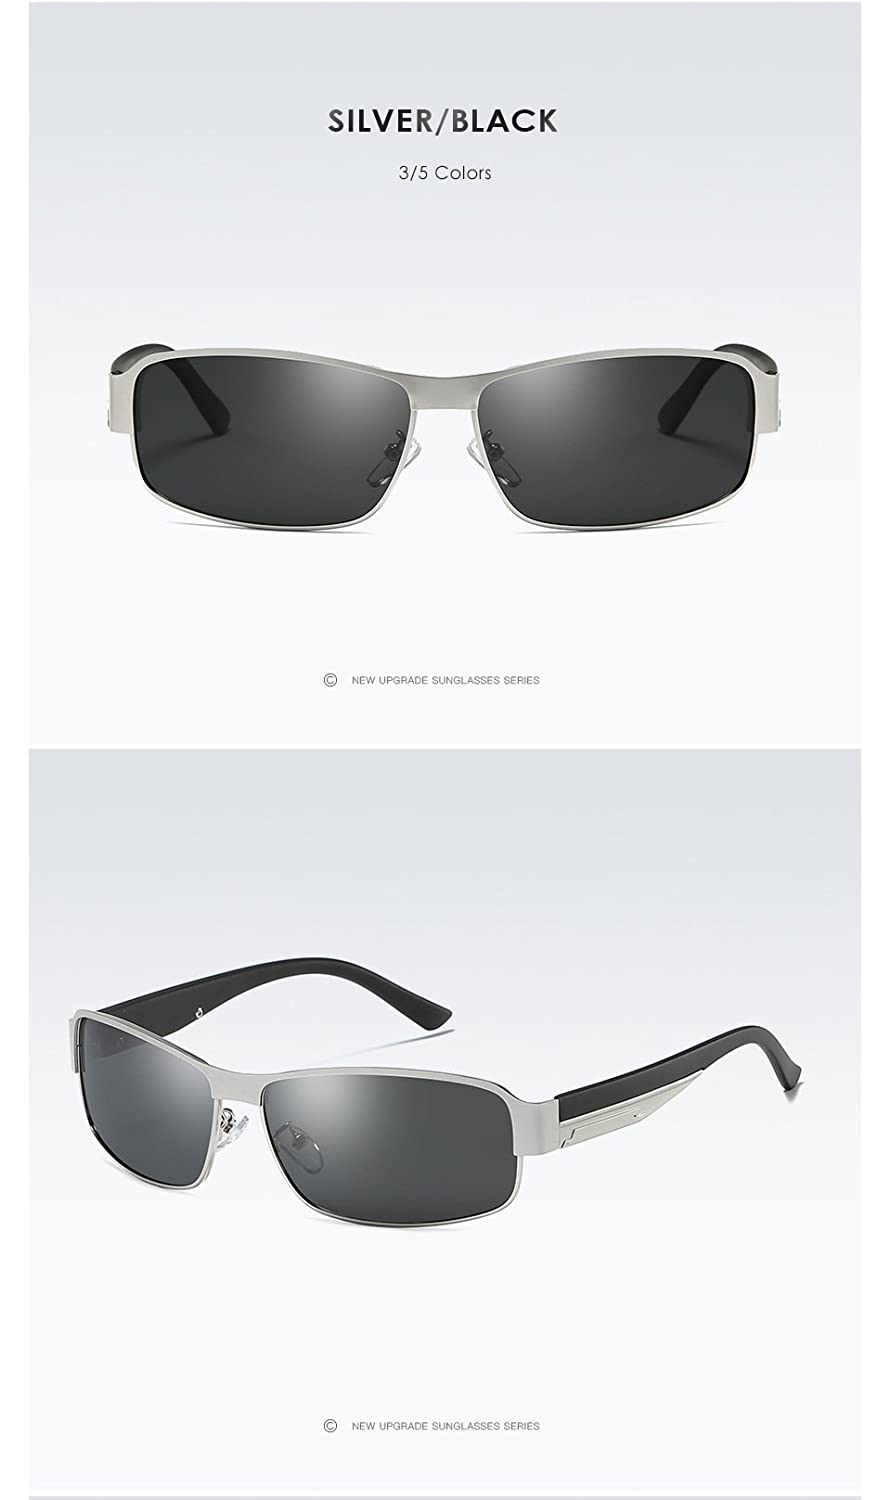 AORON Polarized Sunglass Protect Eyes from UVA//UVB Rays Square Style Men and Women